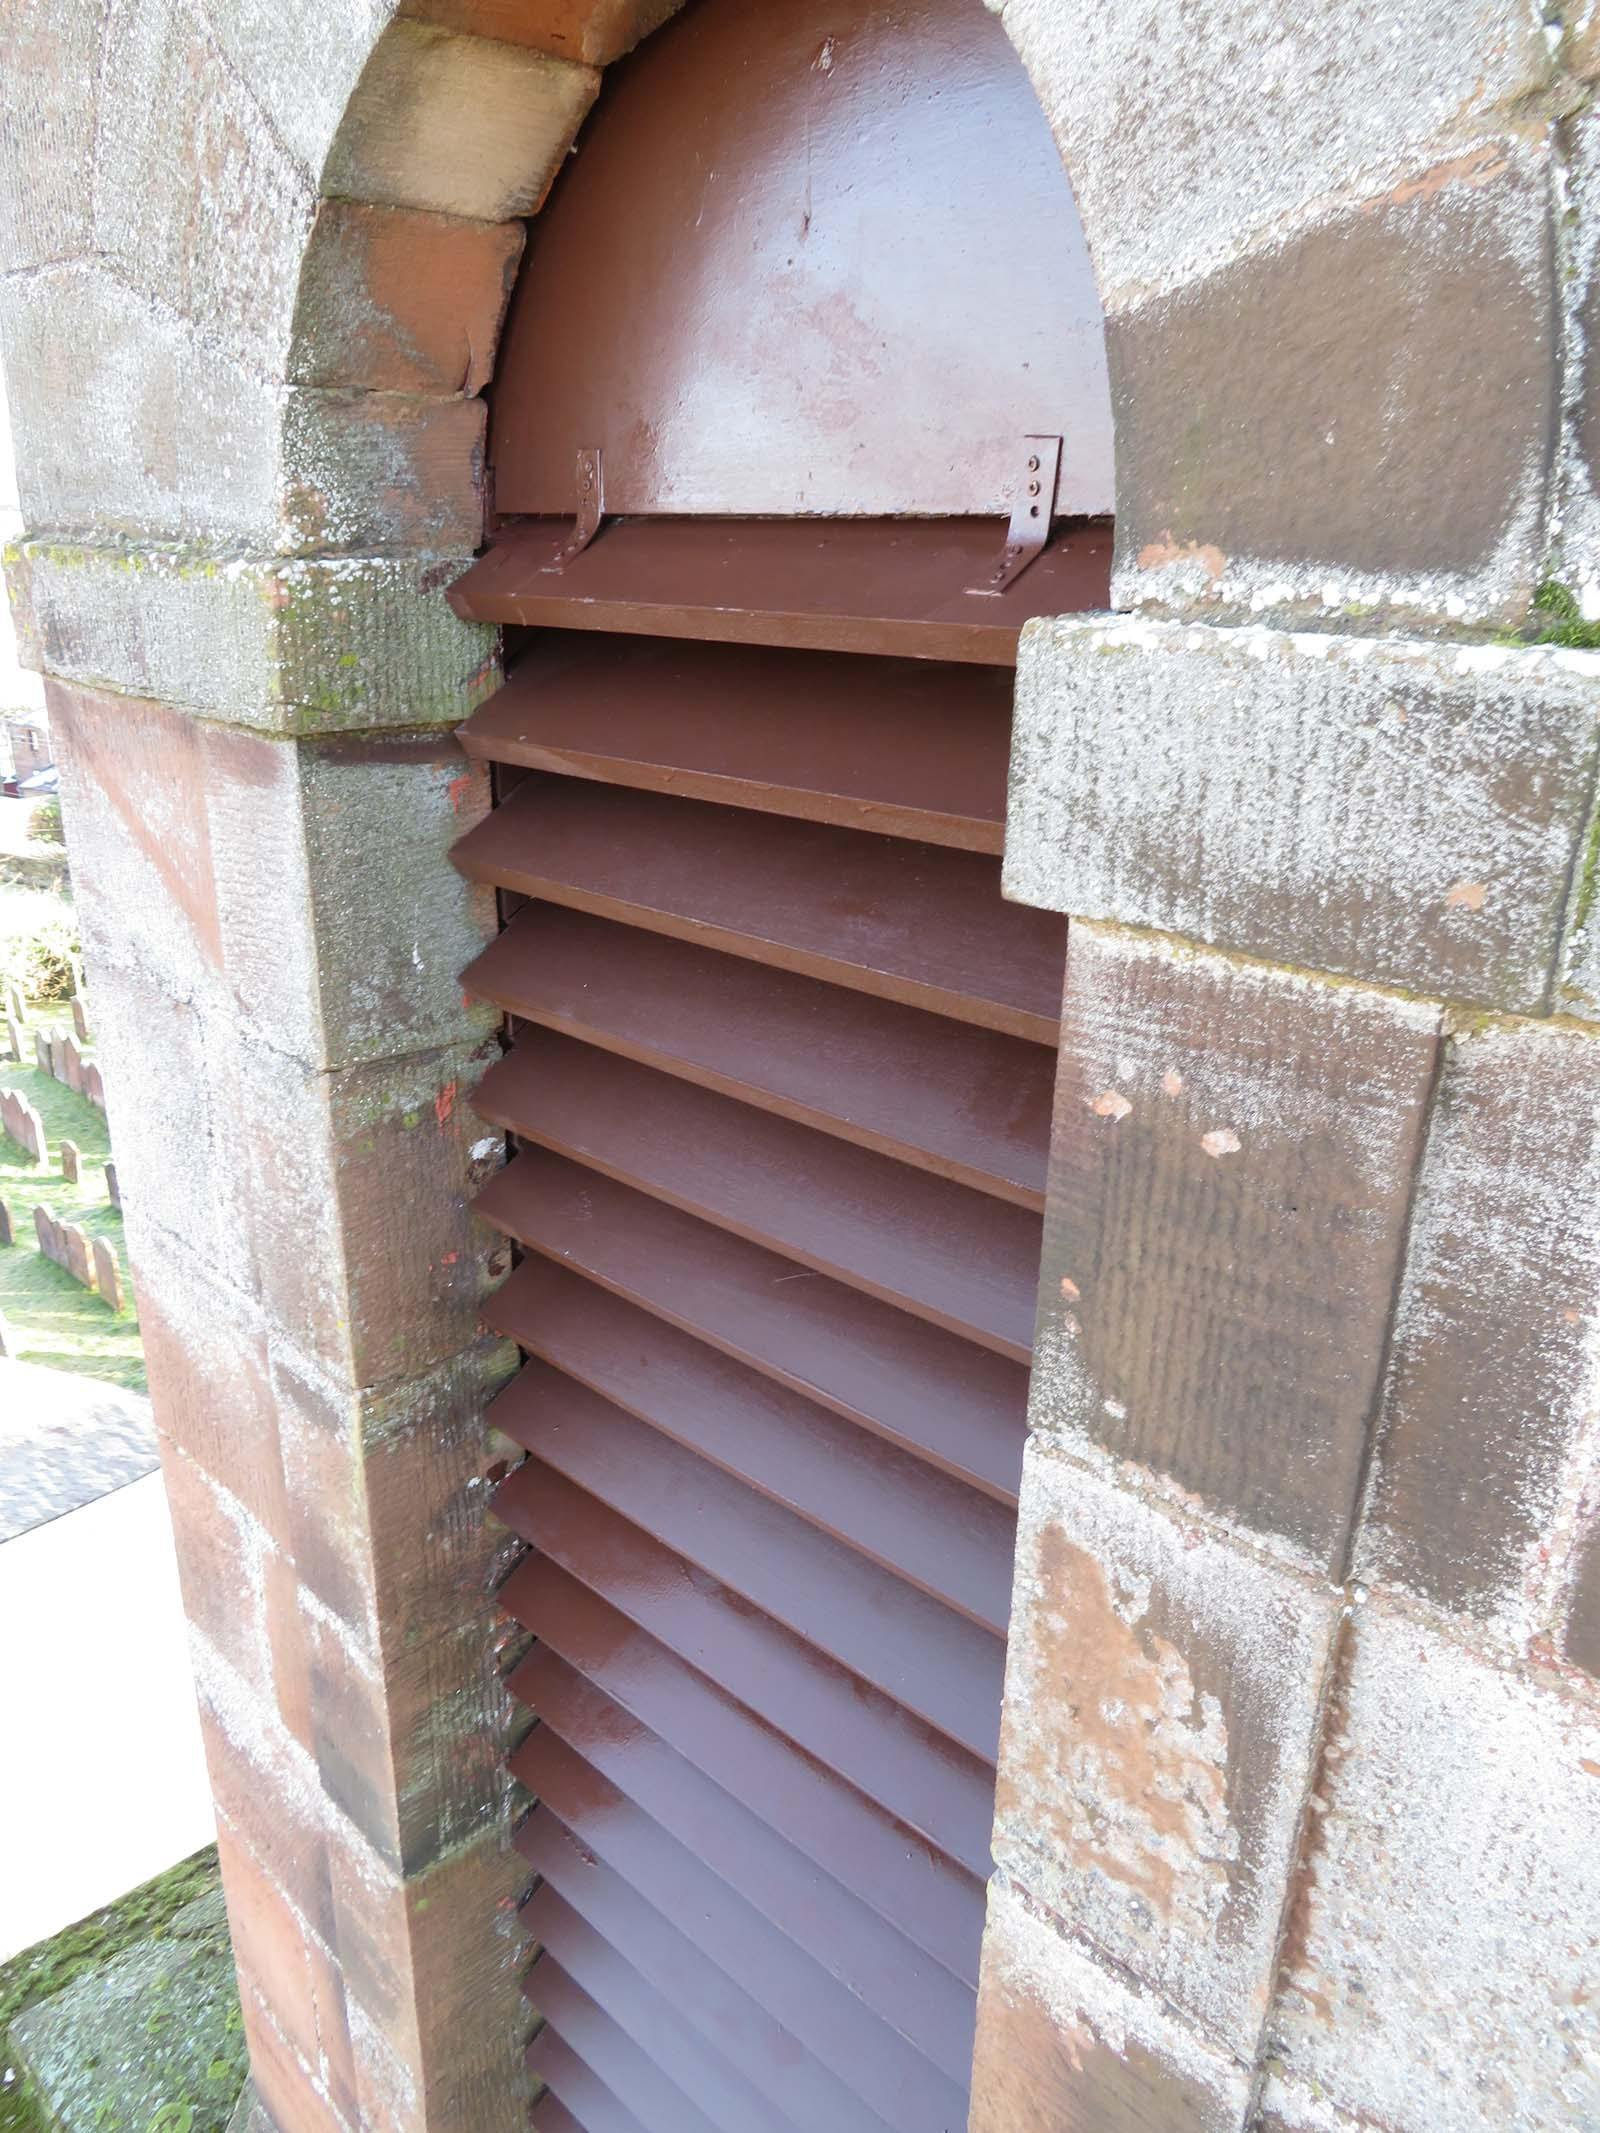 Sapele hardwood louvres installed and painted with 3 coats of paint on a Dumfriesshire church steeple